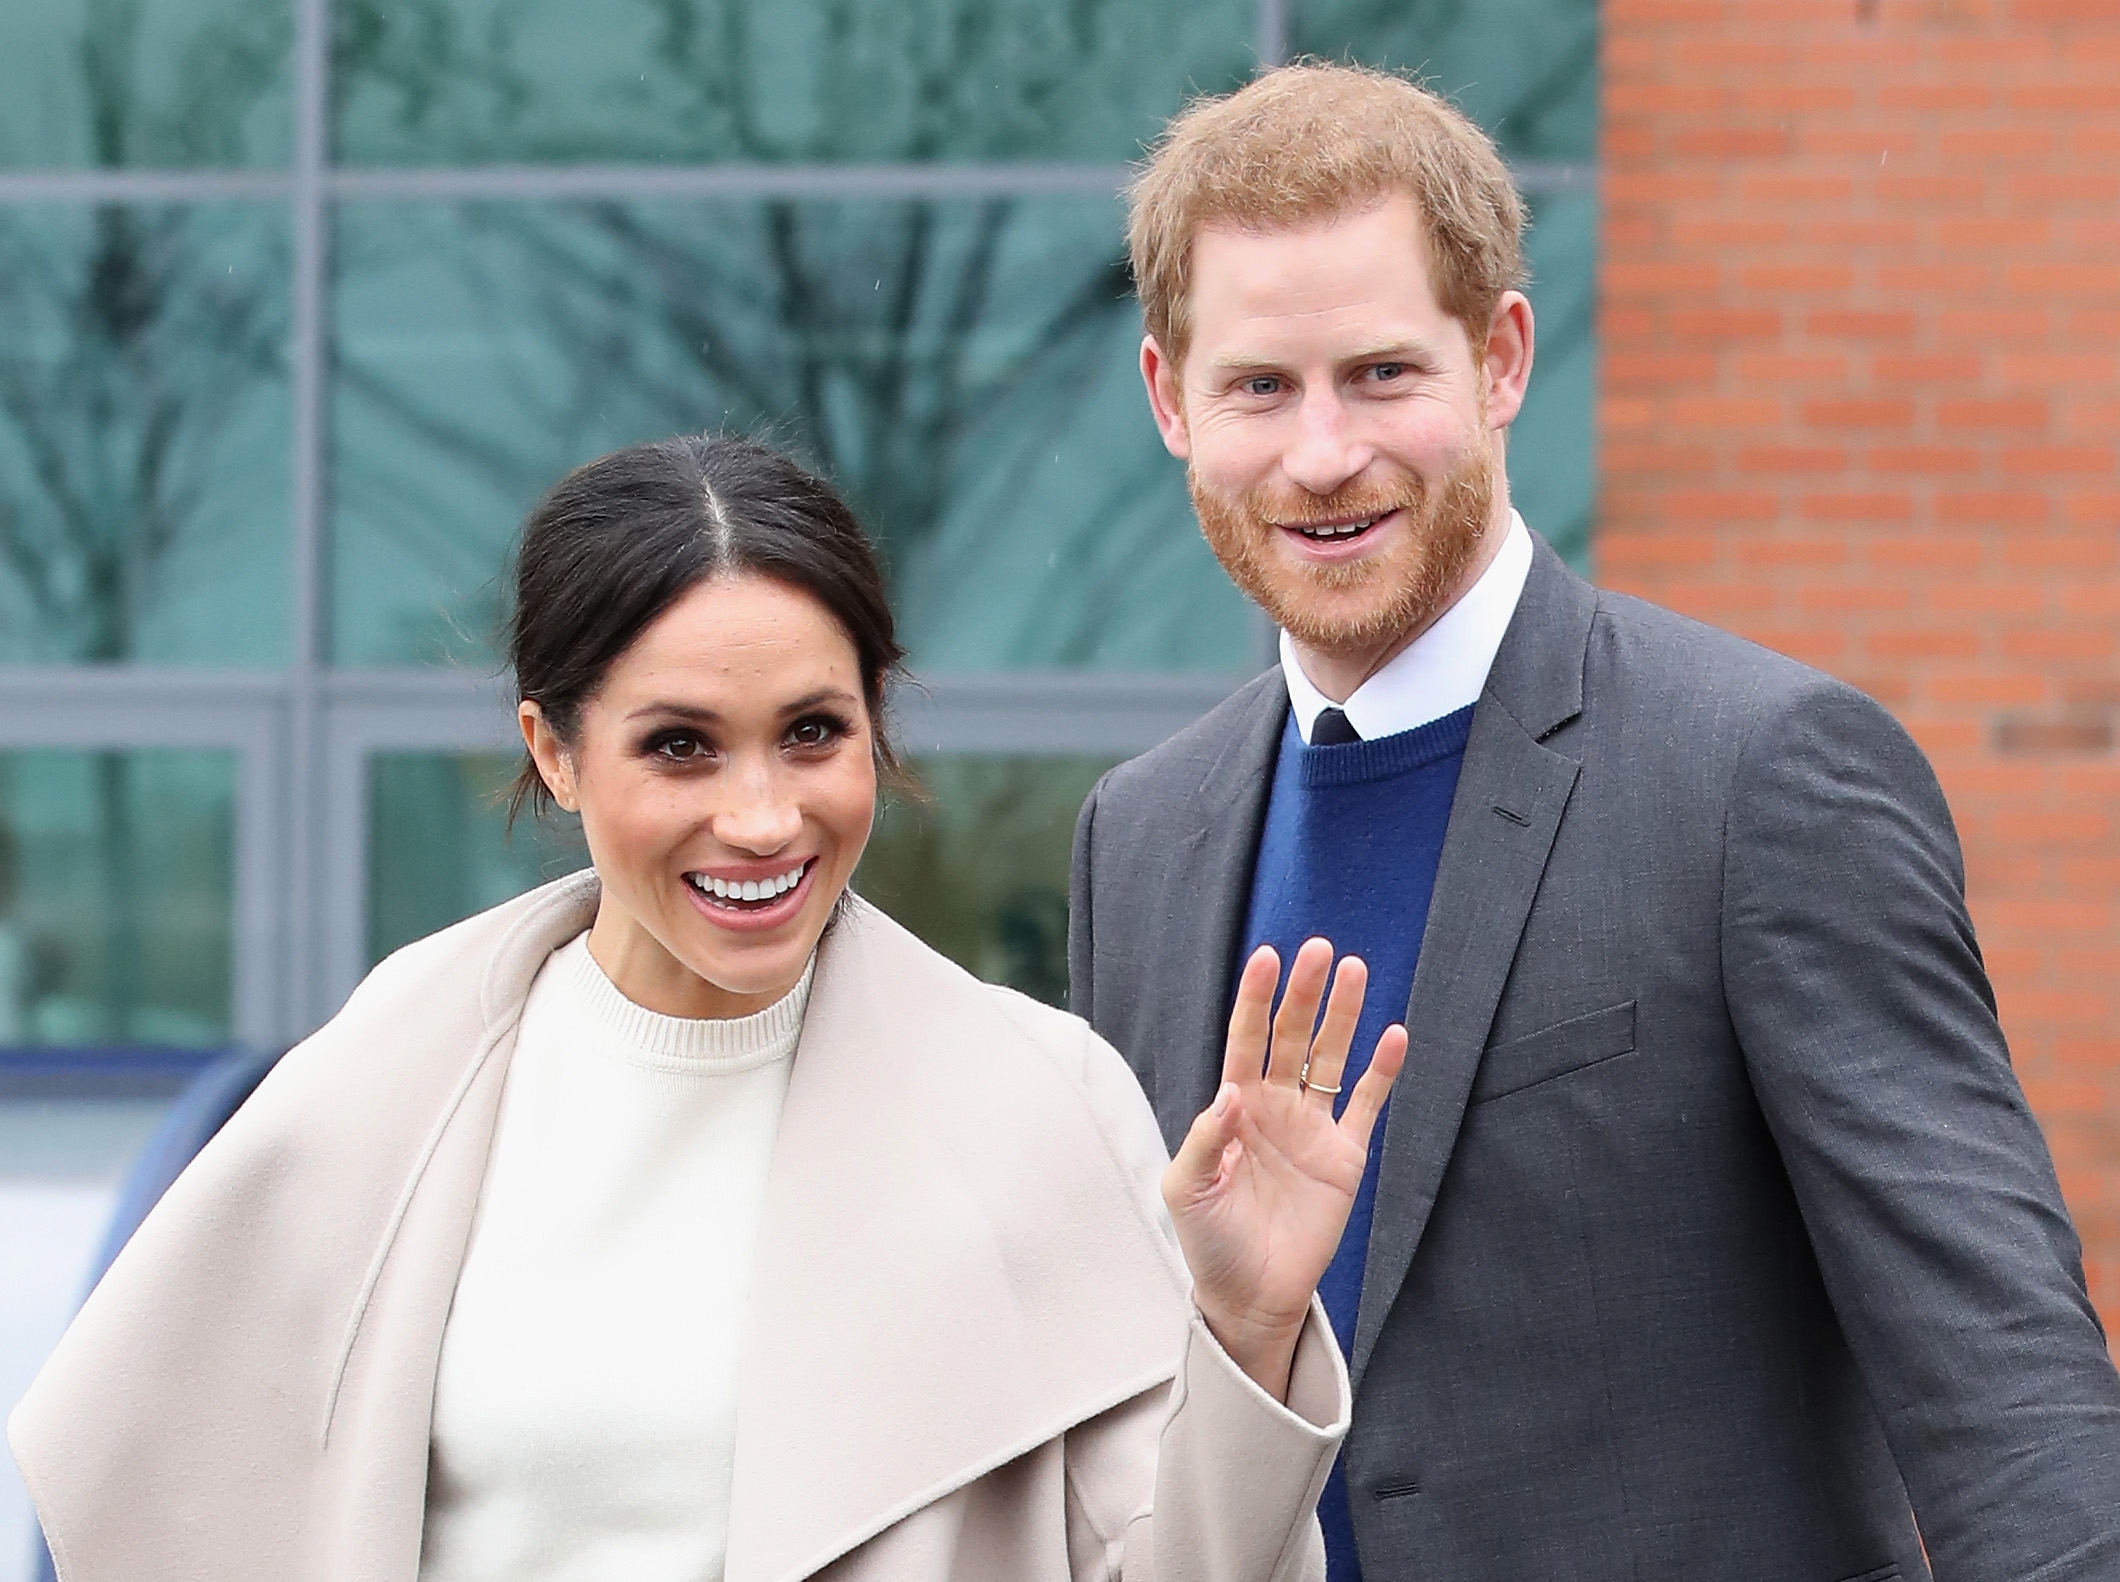 Prince Harry and Meghan Markle visit Catalyst Inc, a next generation science park, to meet young entrepreneurs and innovators on March 23, 2018 in Belfast, Nothern Ireland.